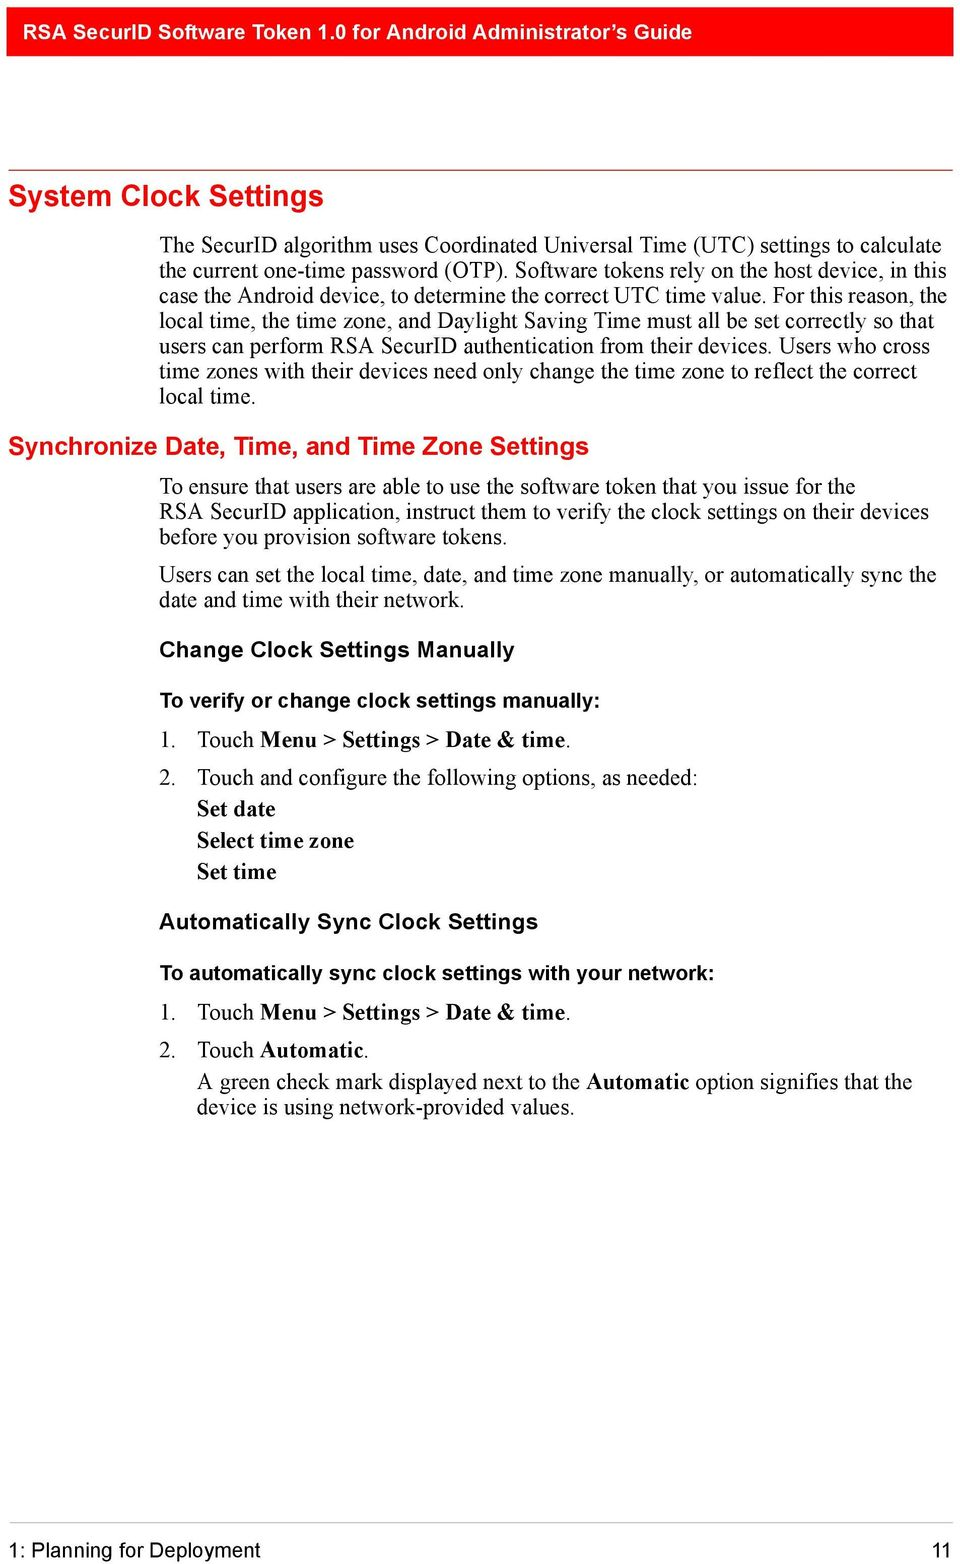 Syndicate bank. Desktop based user manual for using syndprotect.